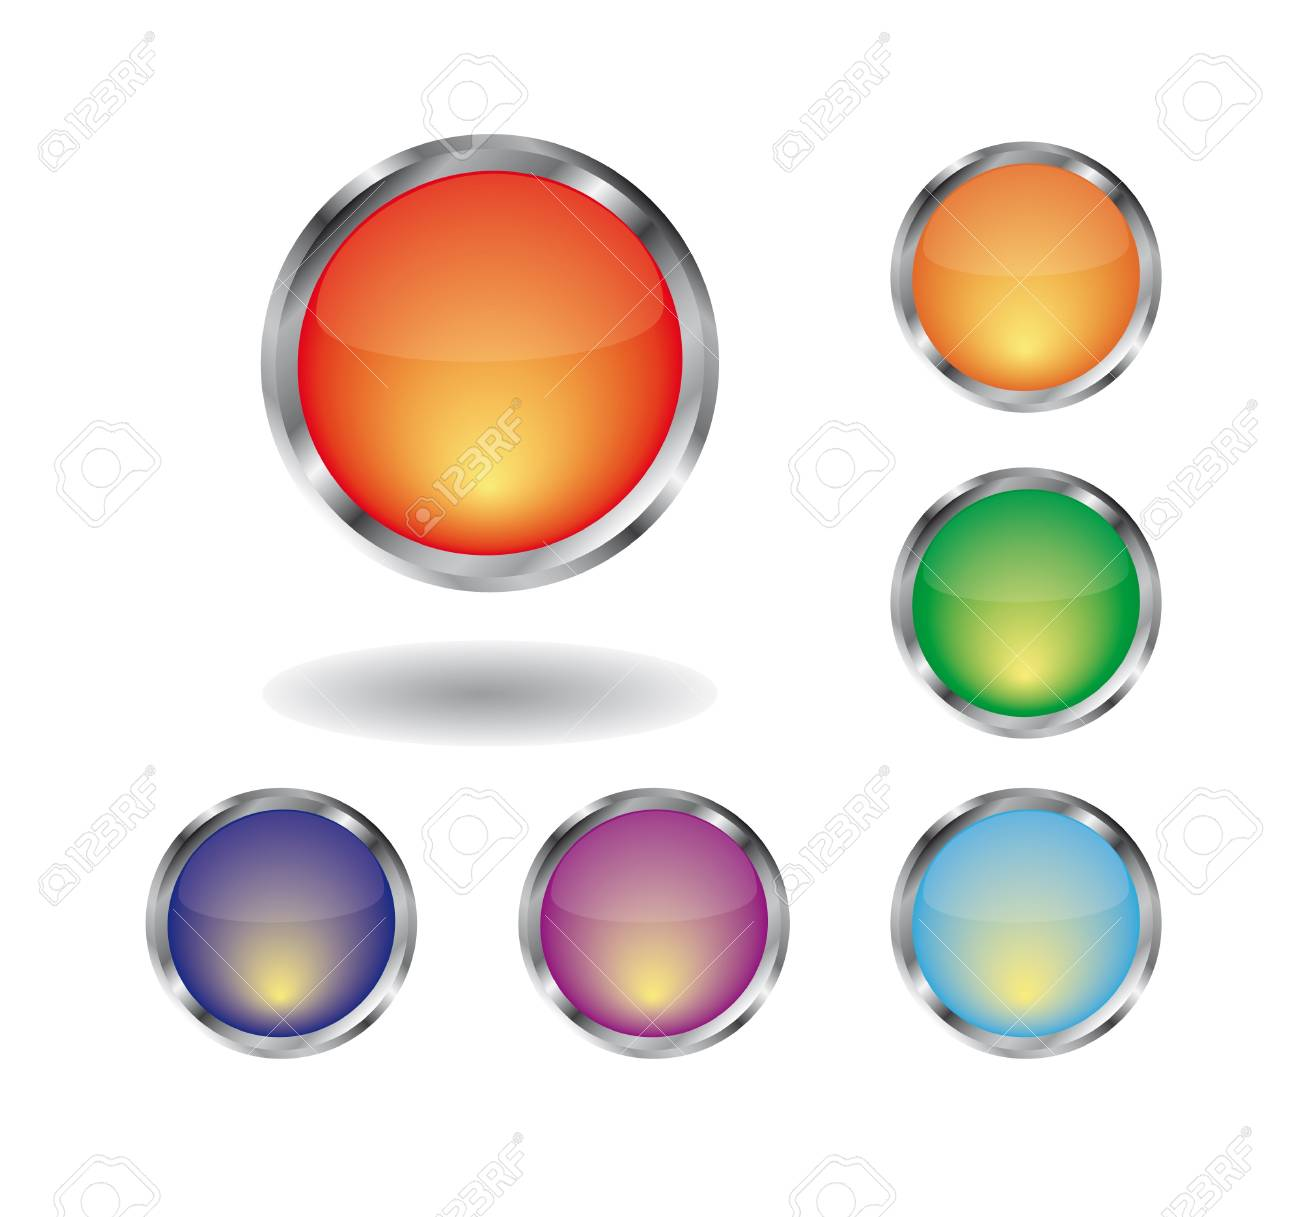 Collection of glossy buttons.  illustration. Stock Vector - 8010605